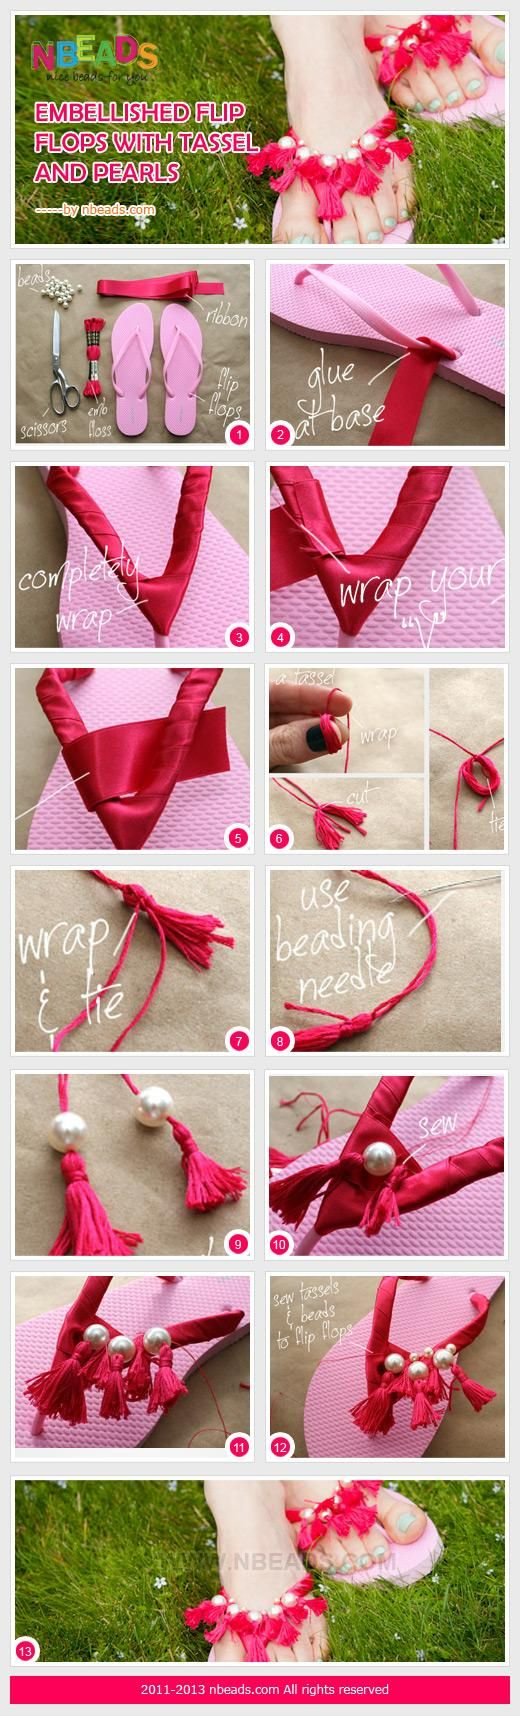 DIY Tutorial: craft tutorials / Embellished Flip Flops with Tassel And Pearls â?? Nbeads